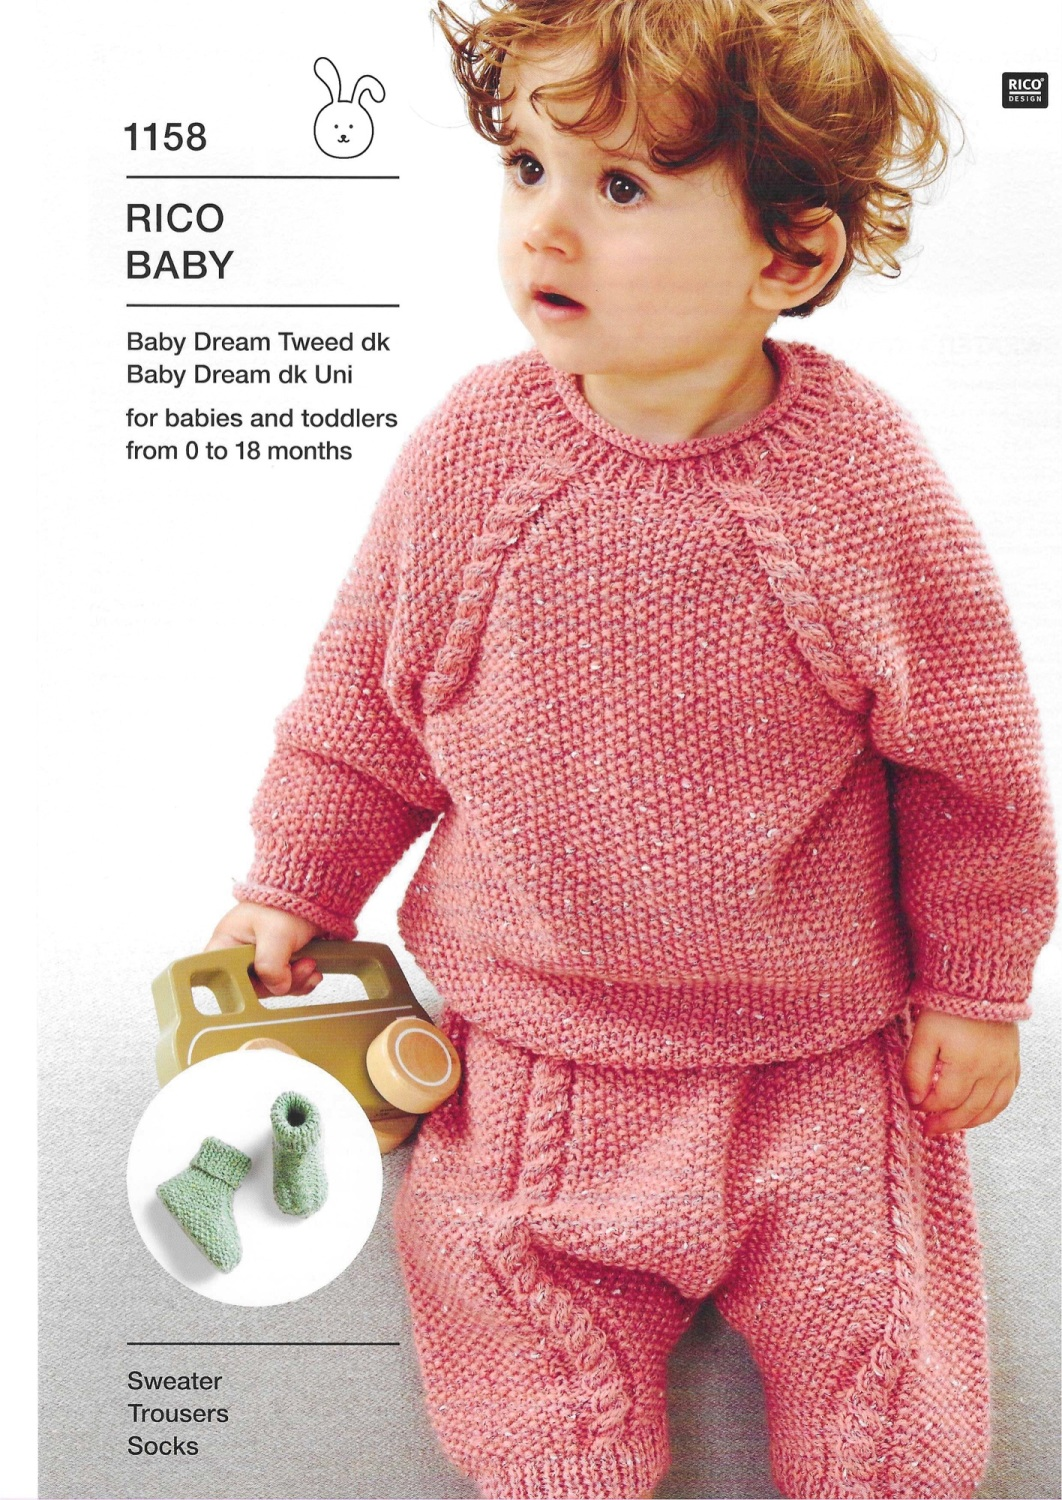 Rico Compact Knitting 1158 (Leaflet)